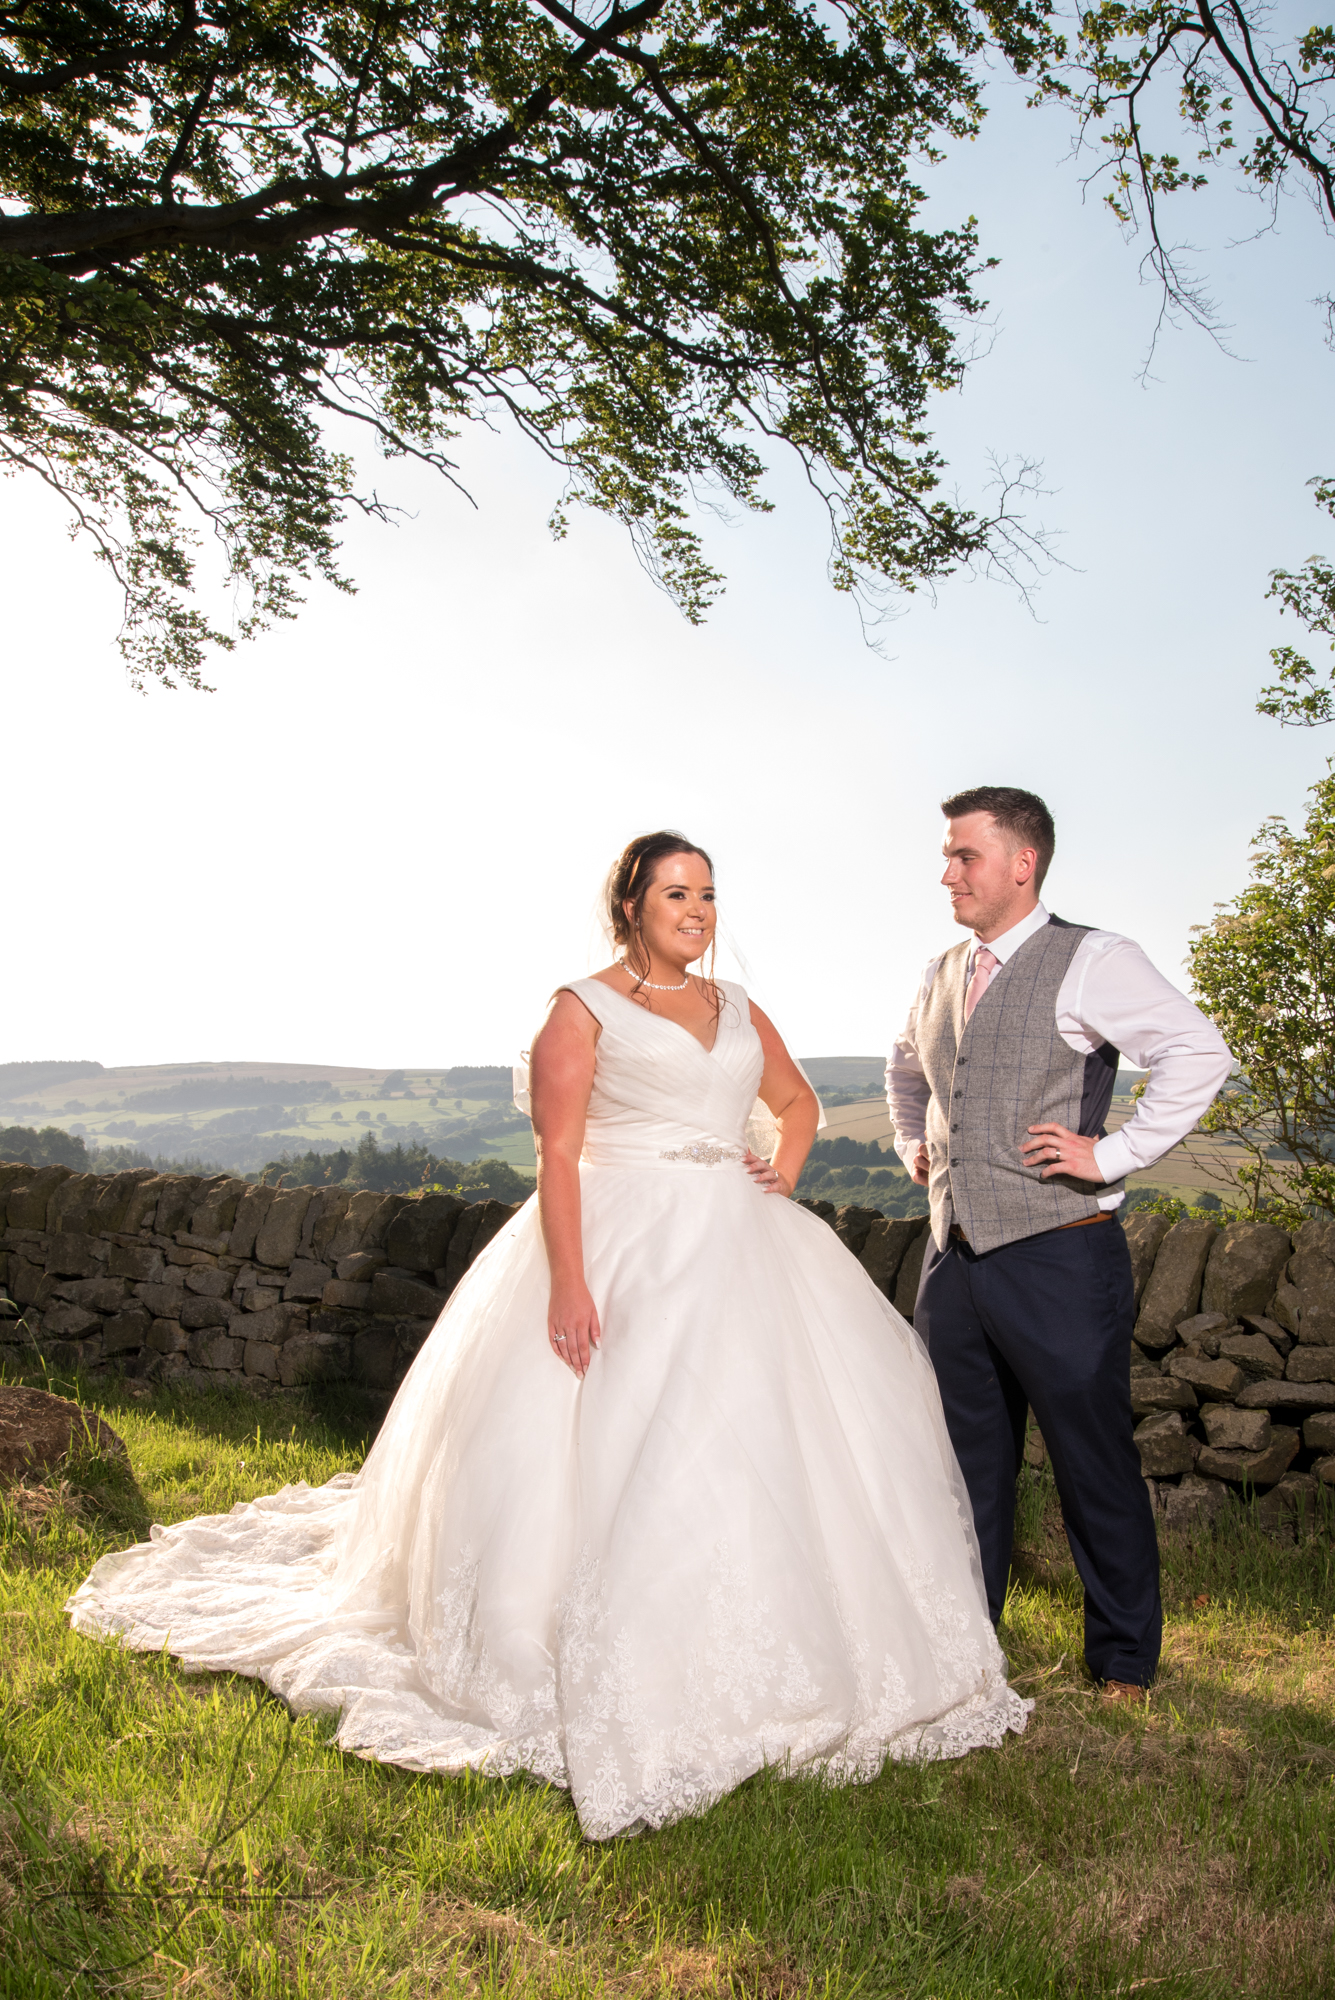 The bride and groom stand in the summer sunlight